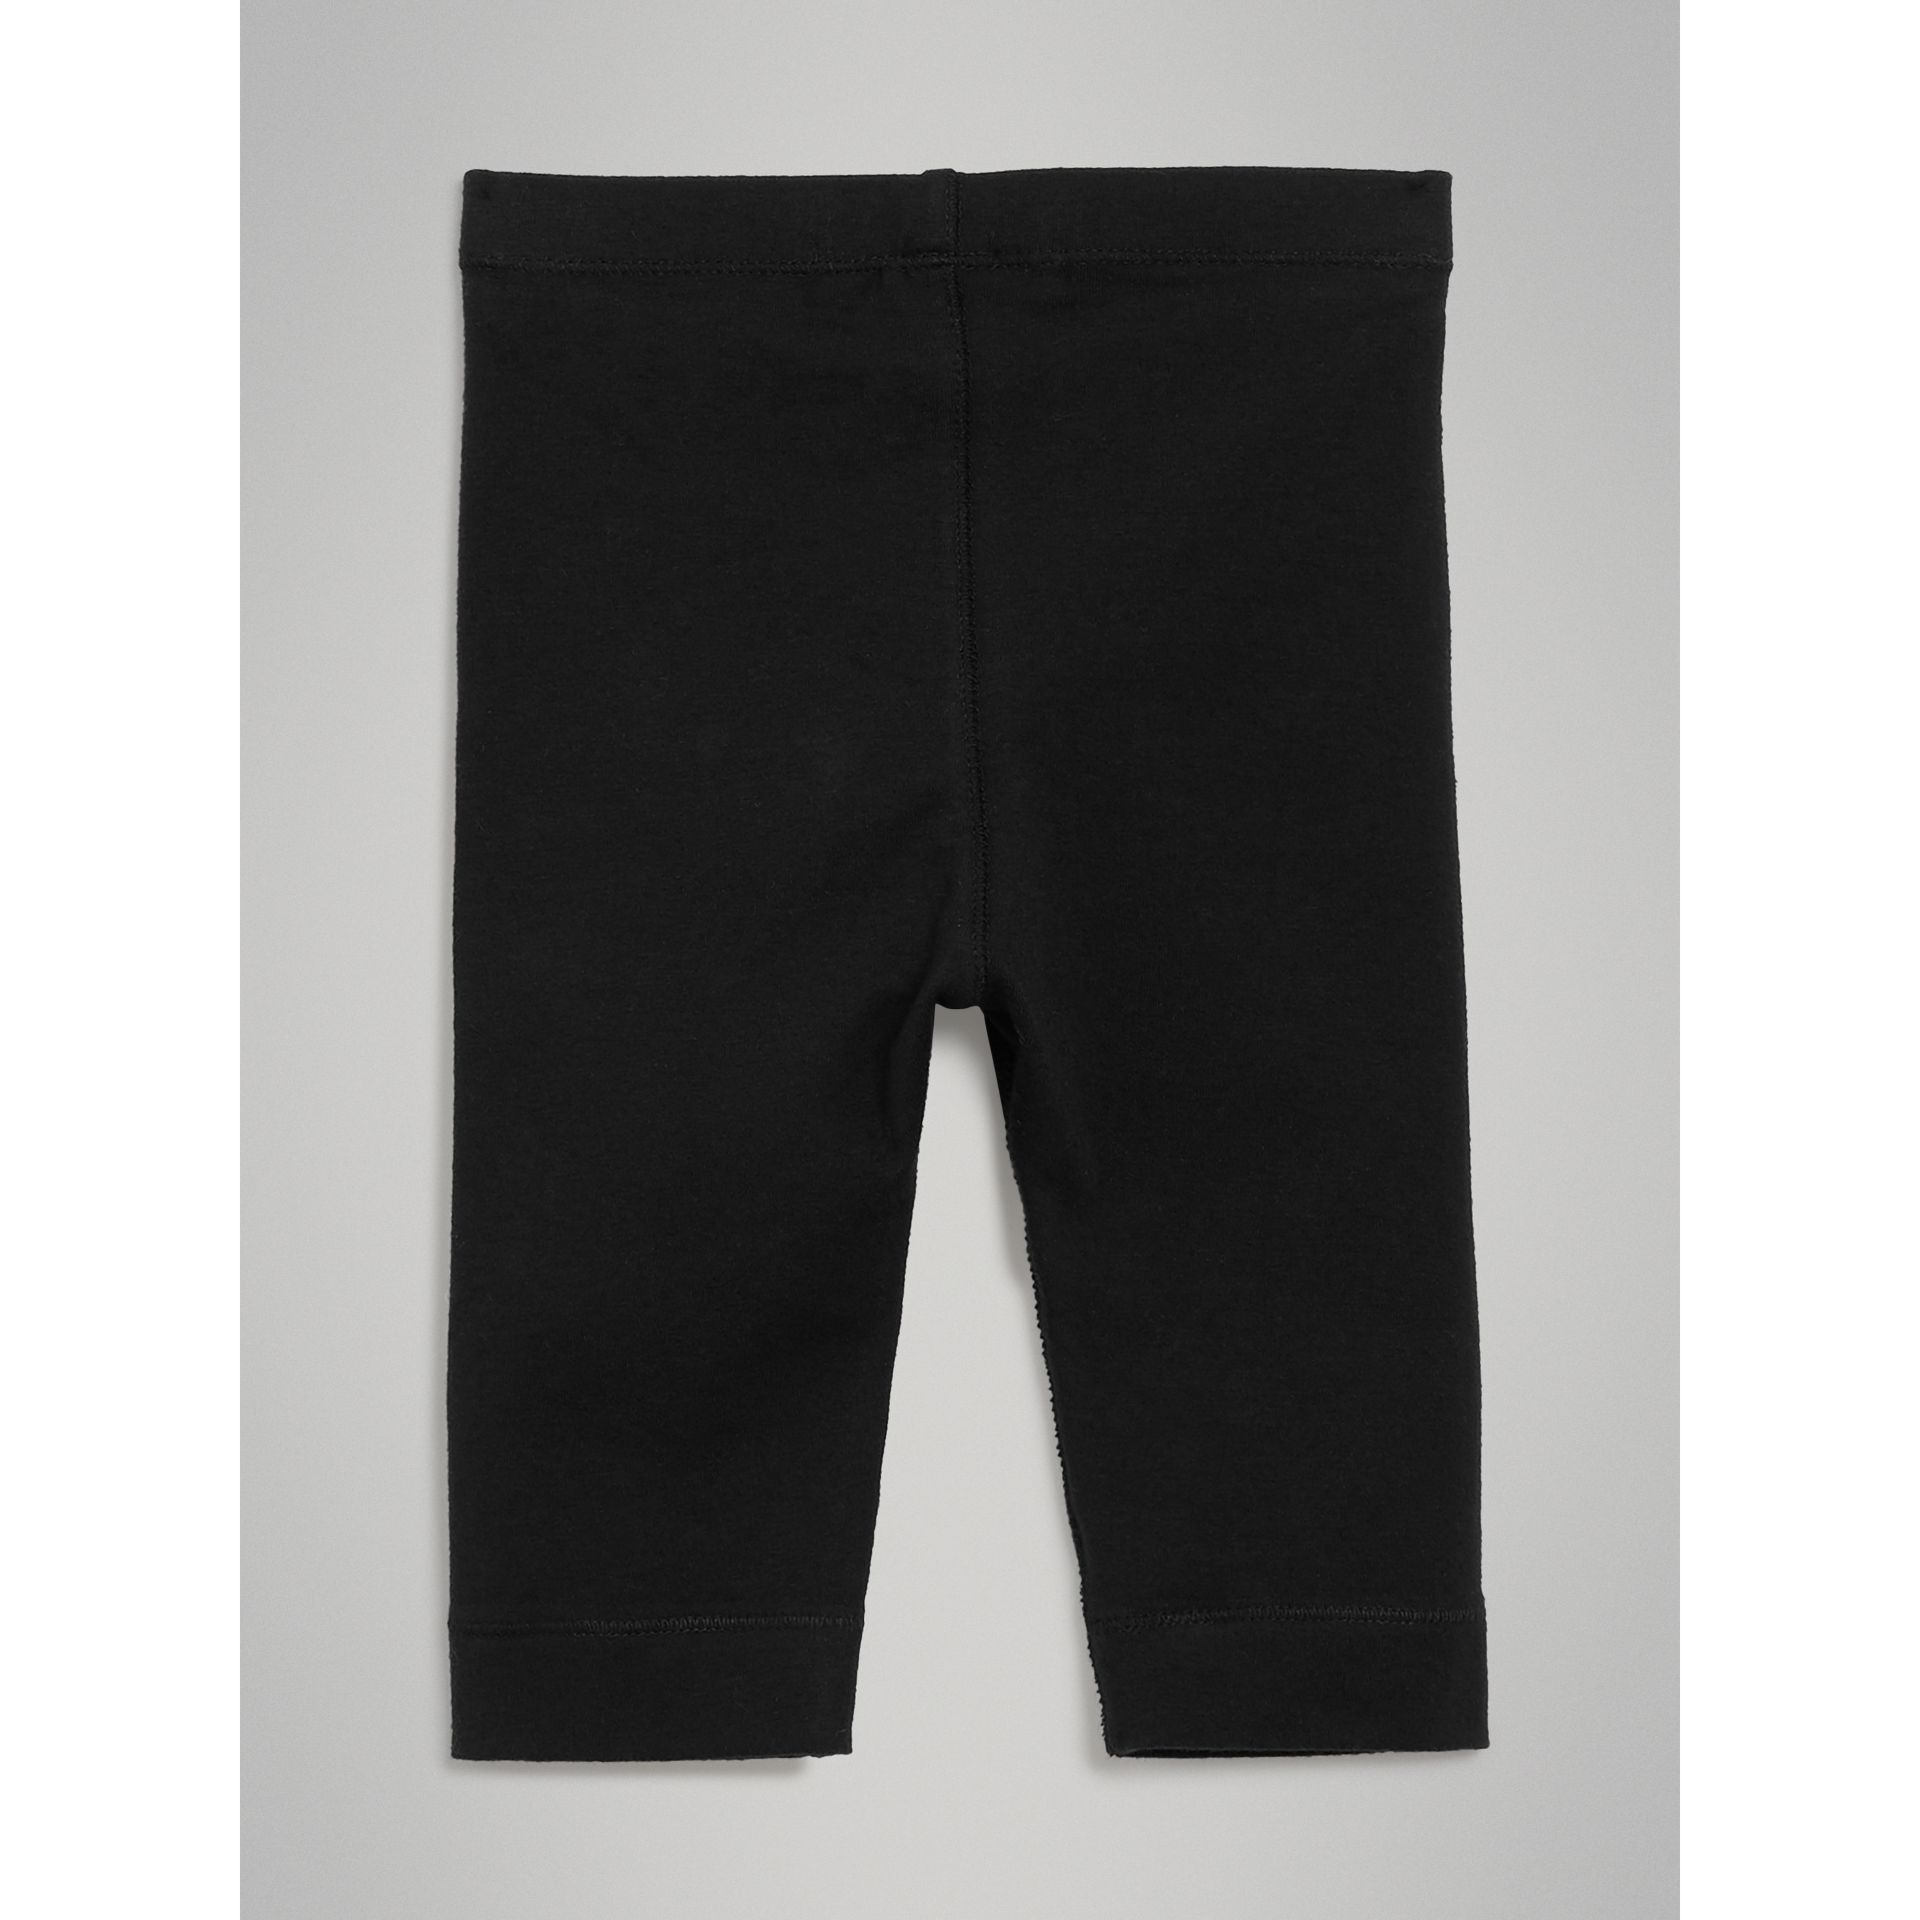 Legging en coton extensible avec logo (Noir) - Enfant | Burberry - photo de la galerie 3